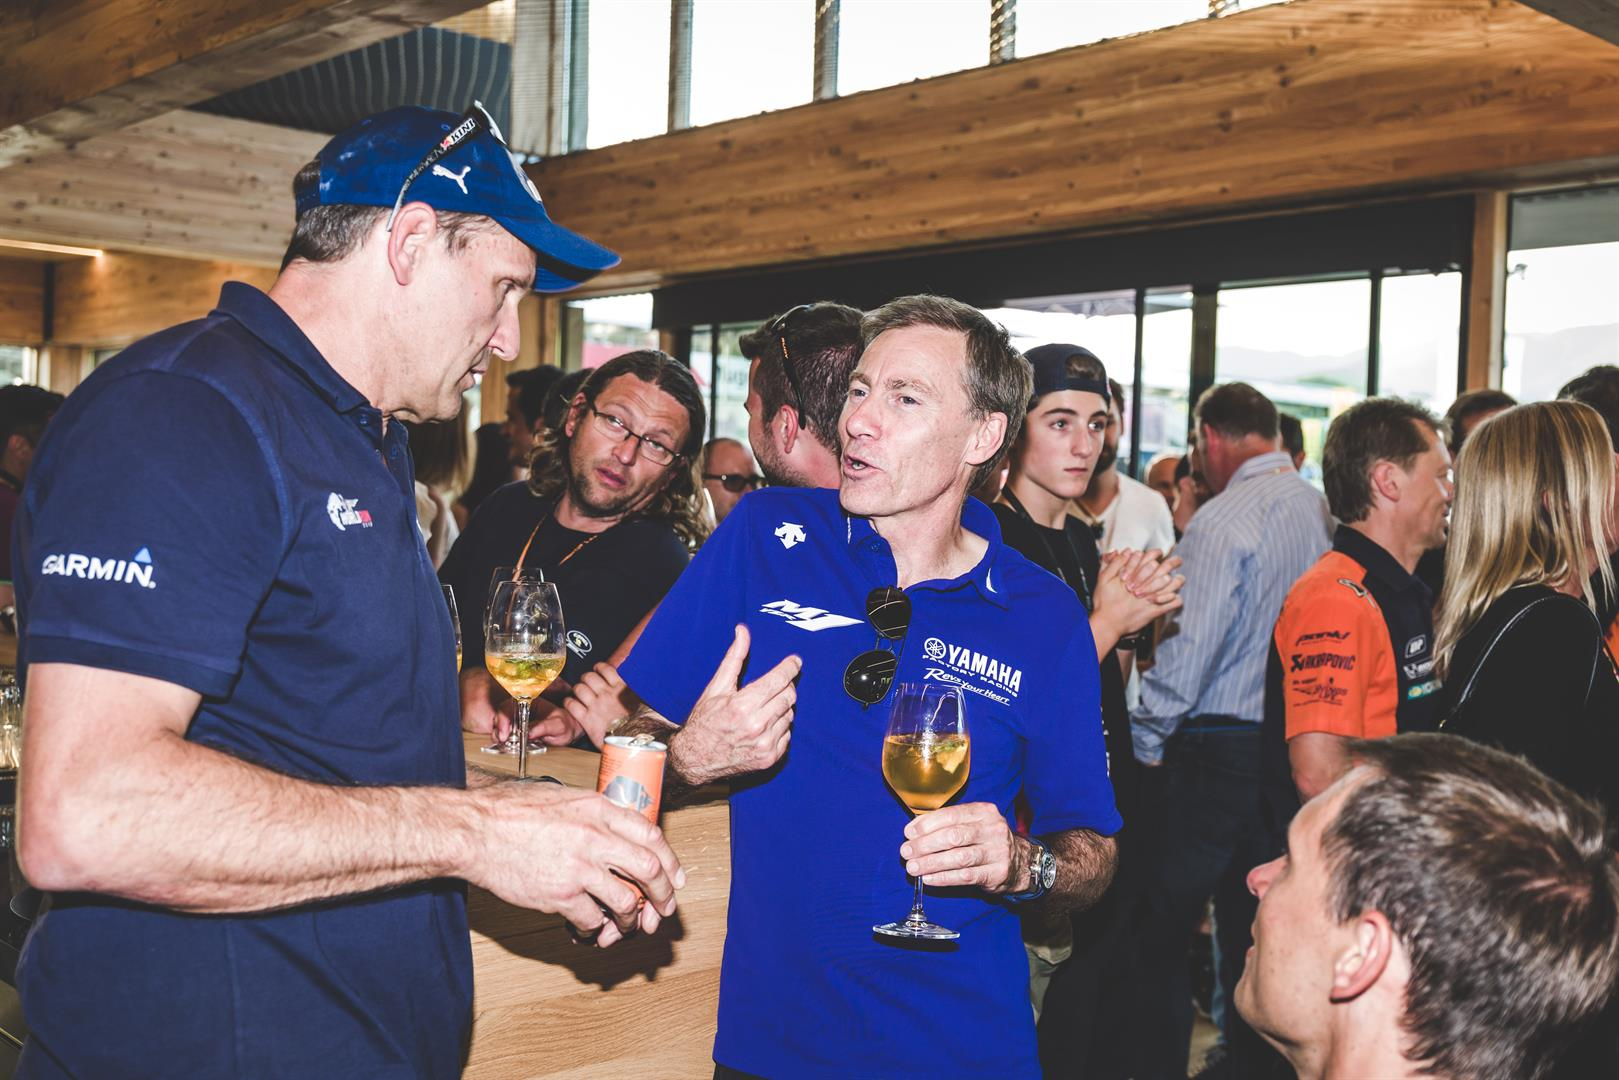 Massivholzhaus Thoma Red Bull Ktm Racing Opens Doors To New Holzhaus Station